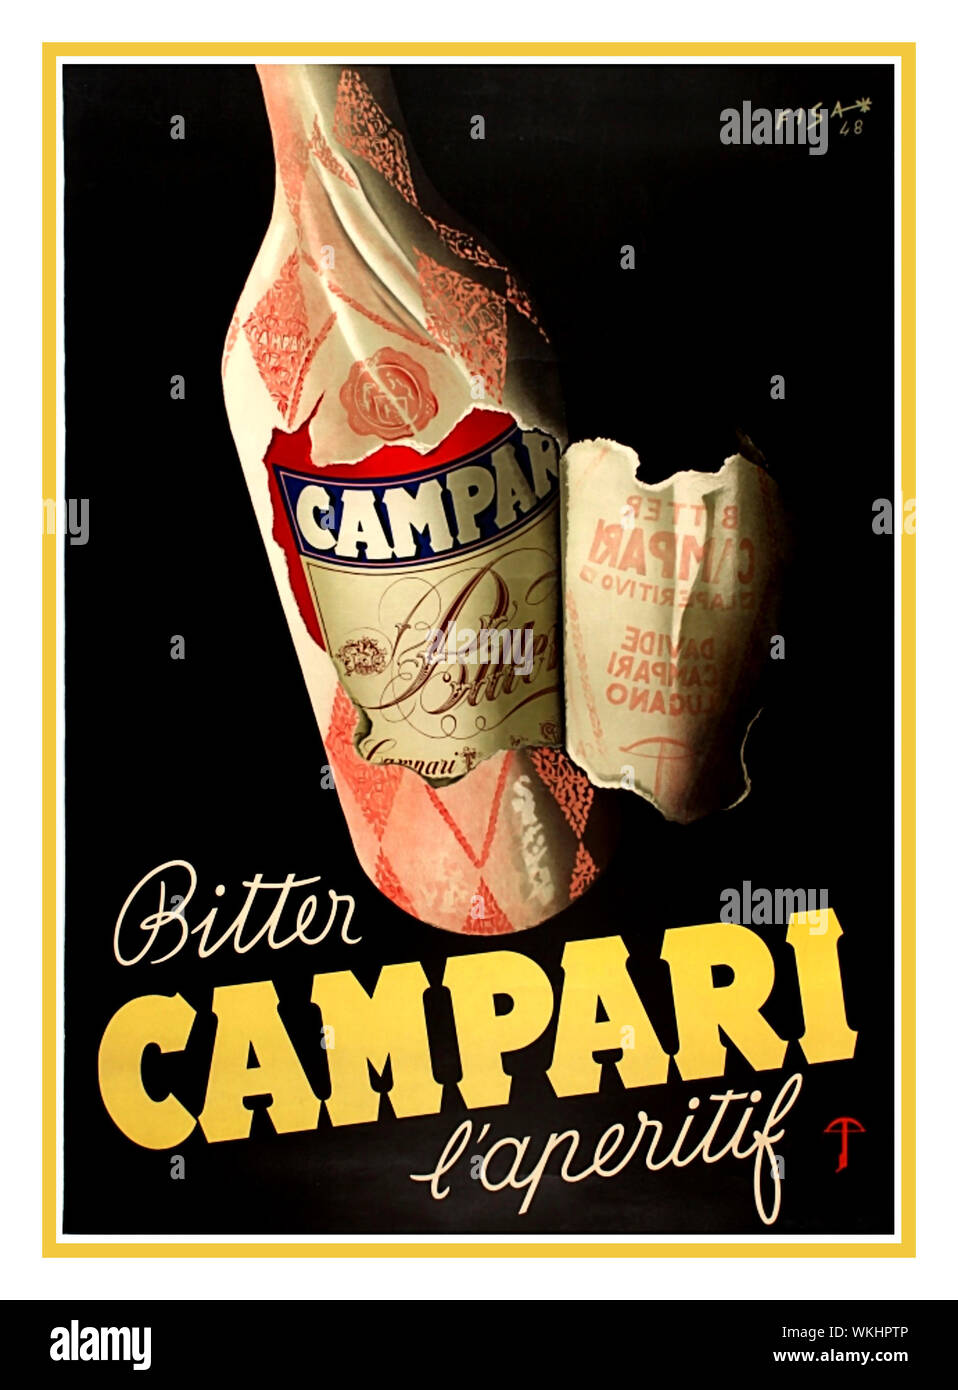 https www alamy com campari vintage drinks poster 1940s vintage drink advertising poster for campari italian bitter aperitif alcohol drink featuring design by carlo fisanotti fisa showing wrapping around a campari bottle being torn off to reveal its label and the words campari bitter set against a black background with the text below in stylised white and yellow letters full poster size printed in italy by a tub cie aarau lugano image270225110 html